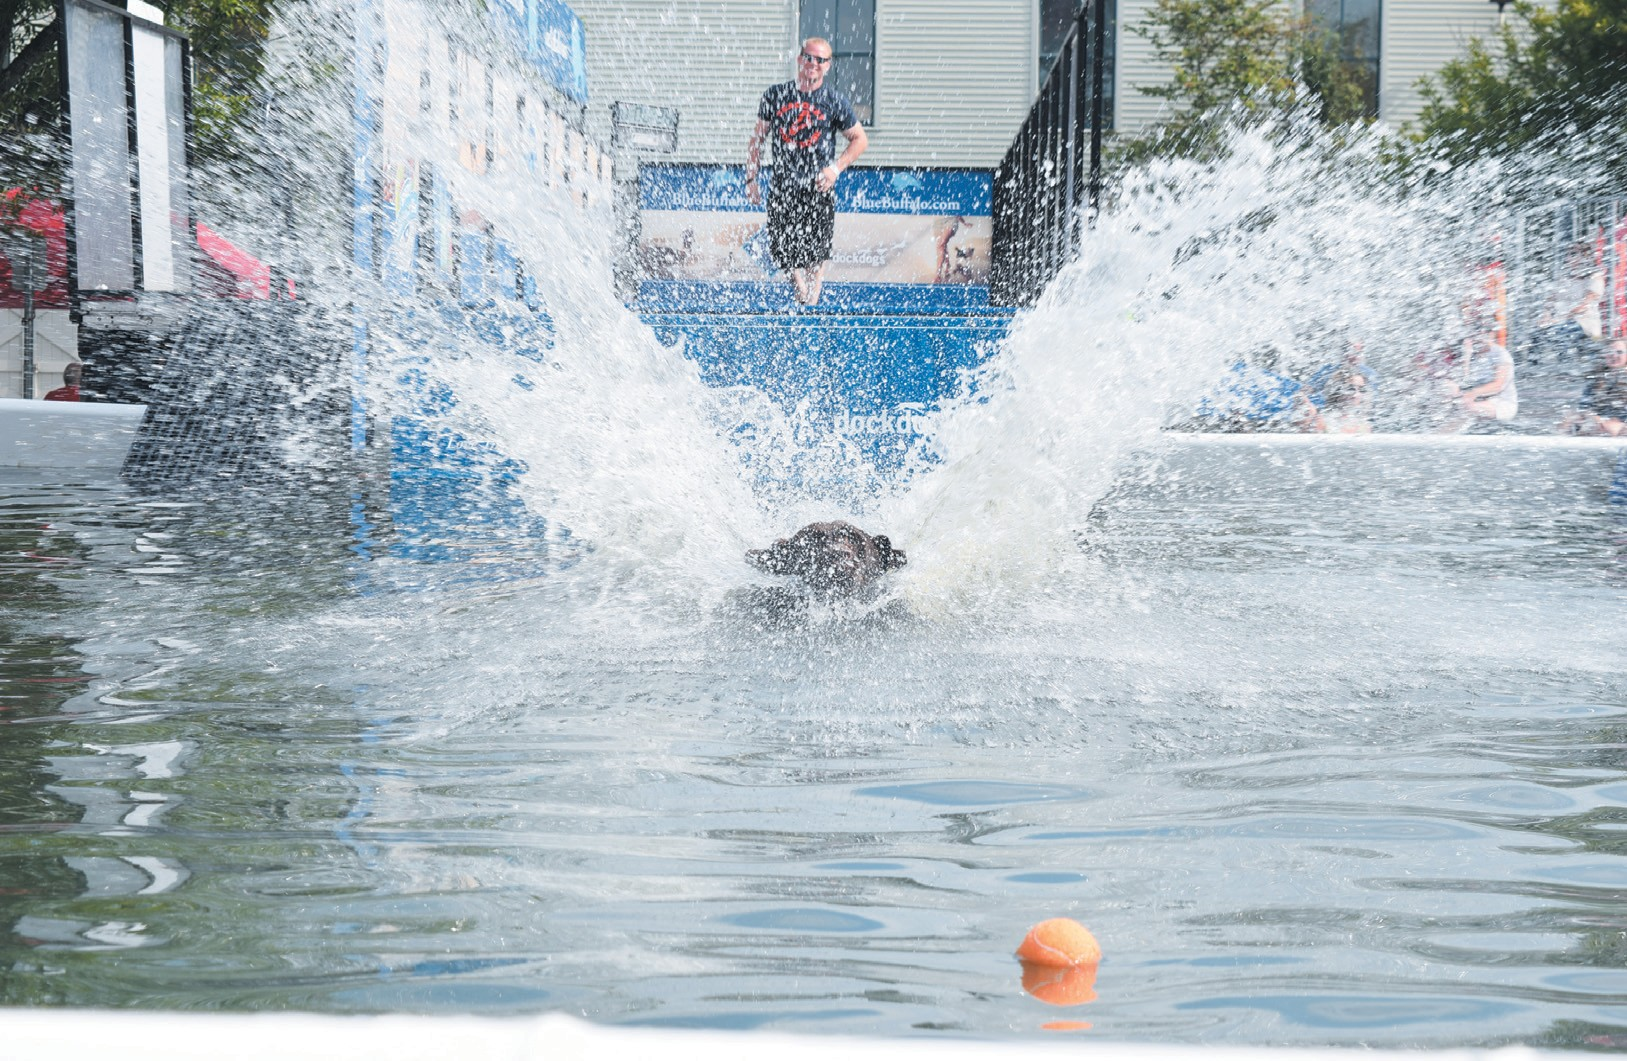 DOZENS OF DOGS took part in Dock Dogs during the Dog Days of August at L.L. Bean in Freeport on Saturday. The free event was well attended, with crowds gathering to see how far the dogs could jump — or whether they'd even get in the water at all. NATHAN STROUT /THE TIMES RECORD